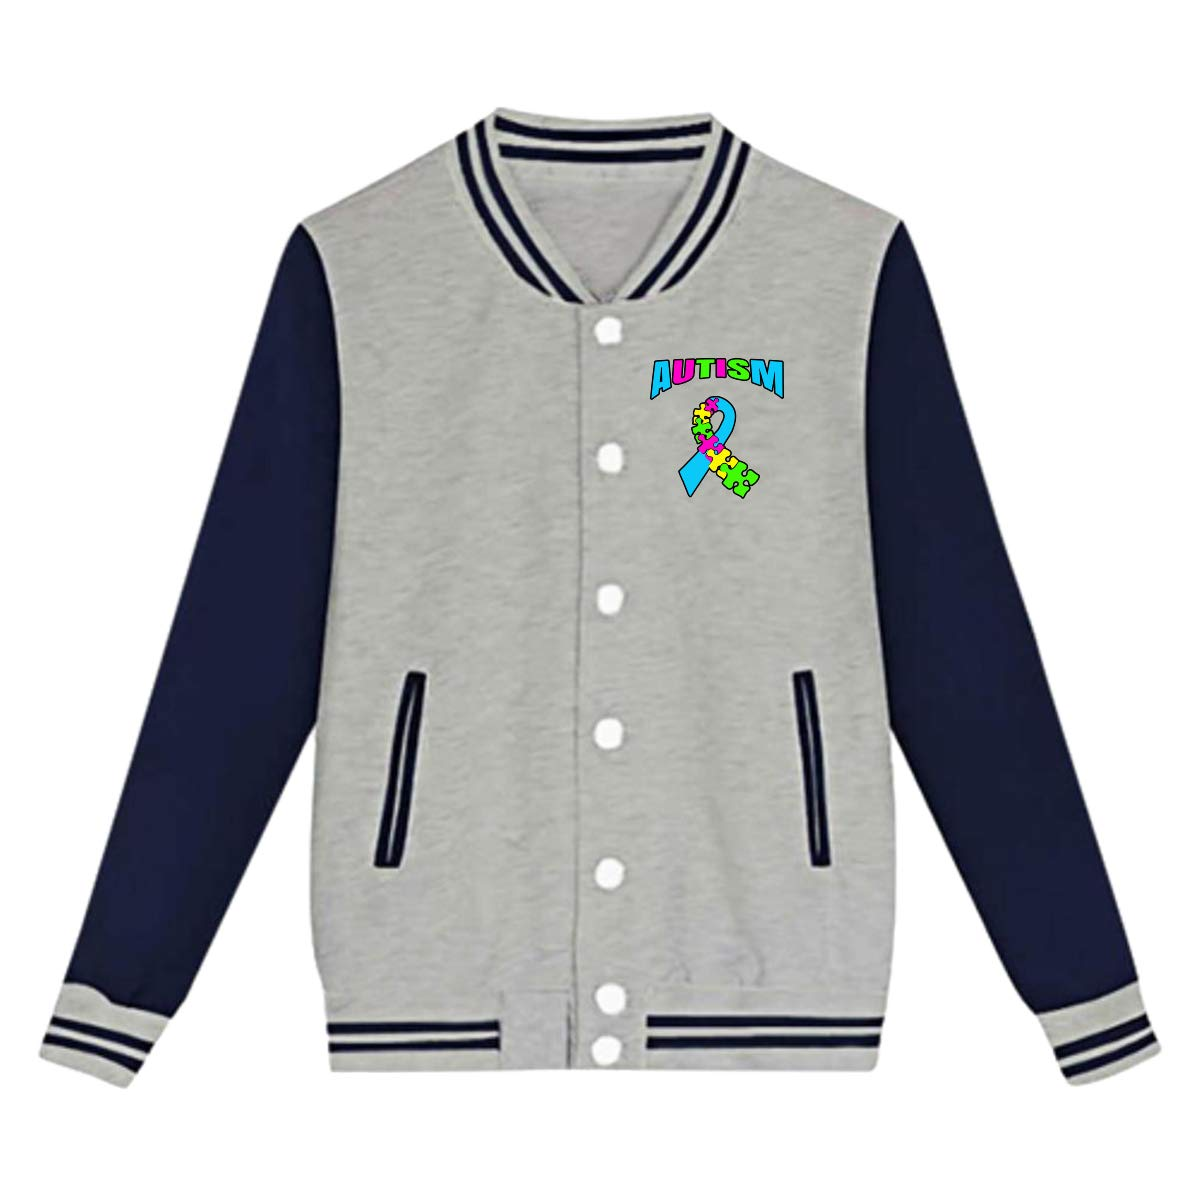 Boys Or Girls Casual Baseball Jacket//Uniform Team Jackets Winter Coats Bing4Bing Autism Awareness Puzzle Pieces Teens Coats